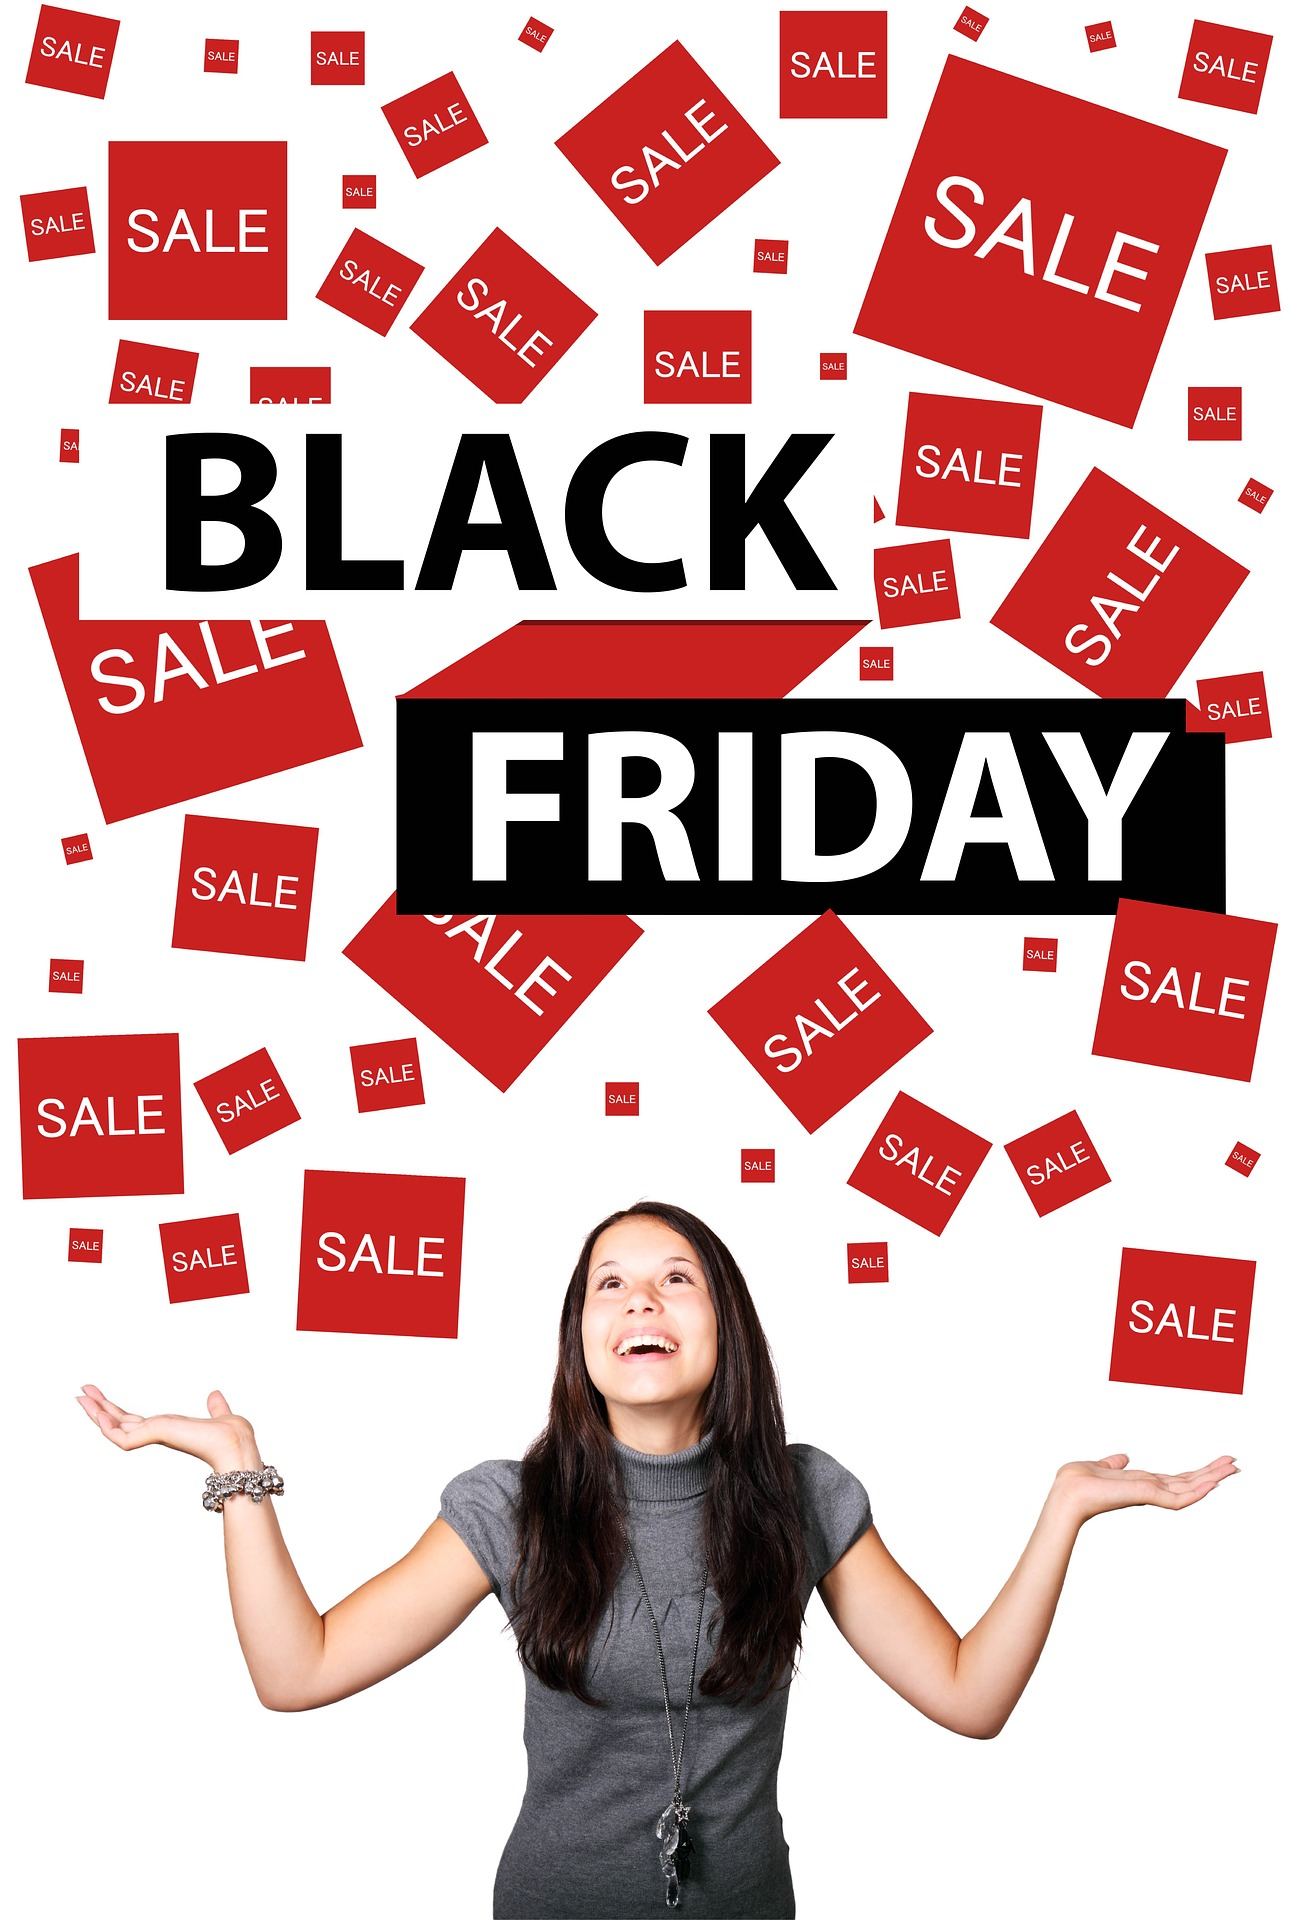 4 Surefire Ways to Sell Out on Black Friday